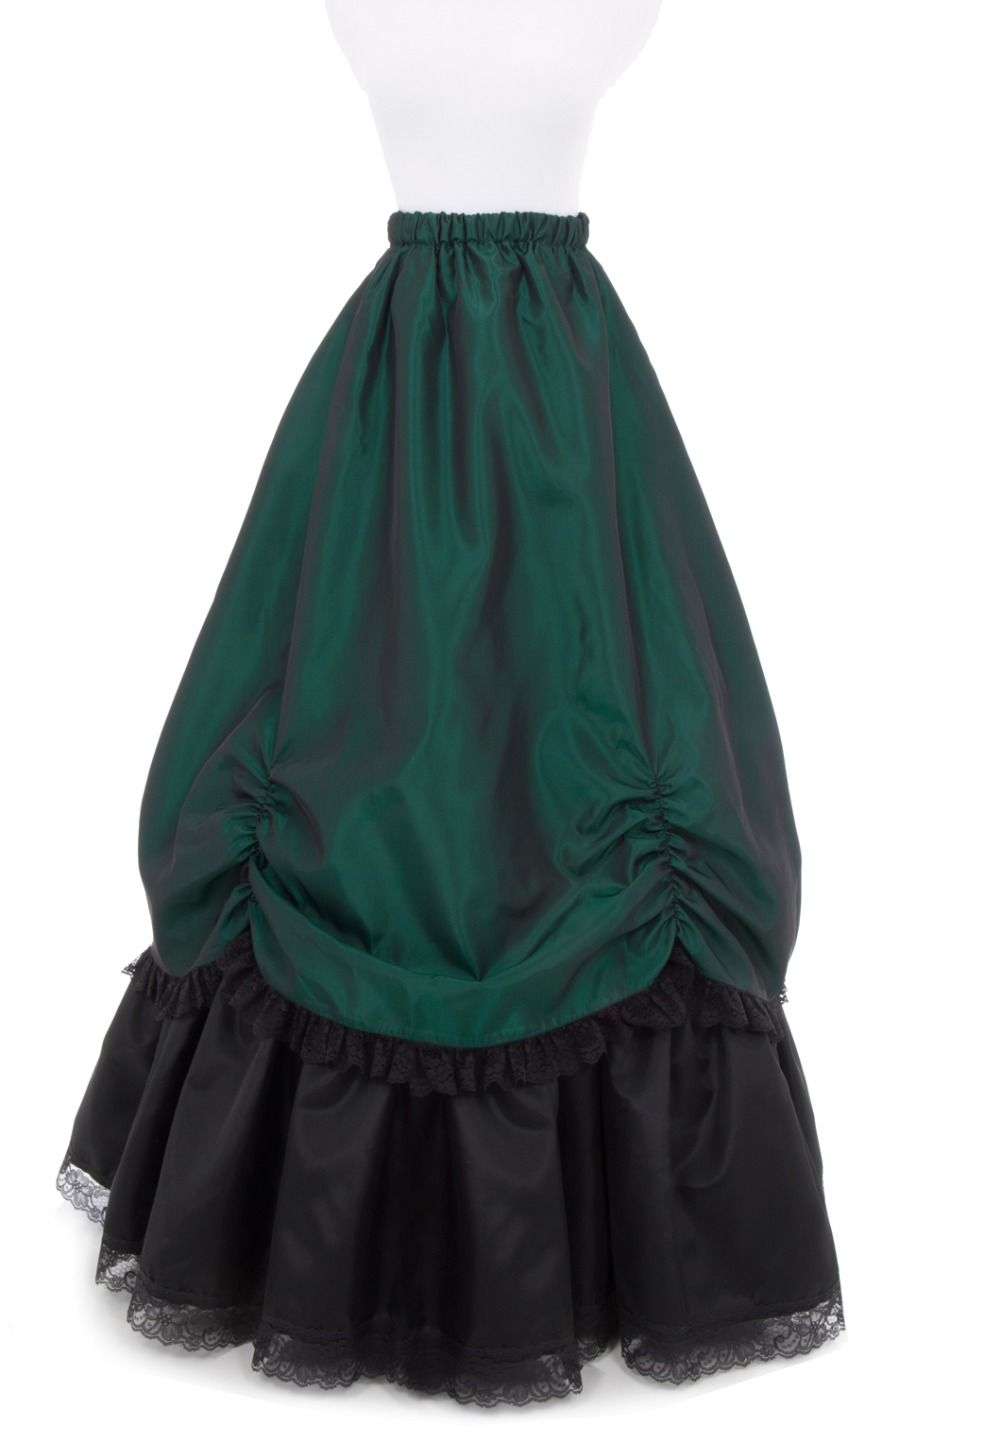 ed2864257 Royal Blue Victorian Skirt Victorian French Pleated Gathered Bustle Skirts.  Yesterday's price: US $100.00